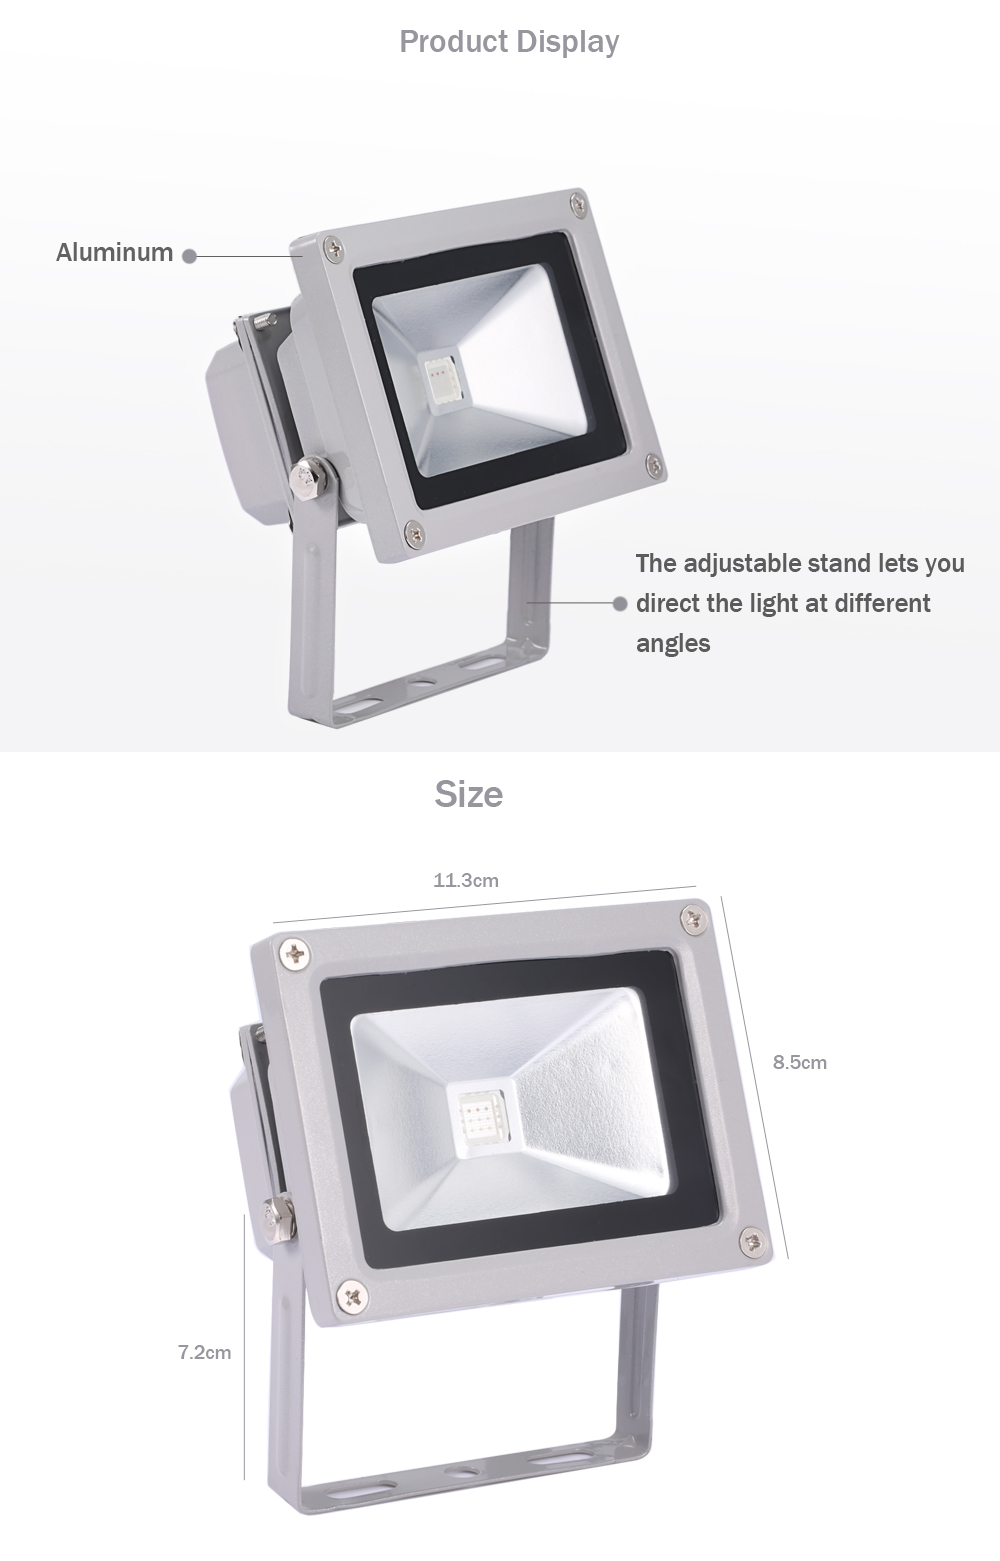 Sanzo Led Flood Light Wiring Diagram 36 Images Pir Floodlight Instructions 20161222145345 35473 10w For At